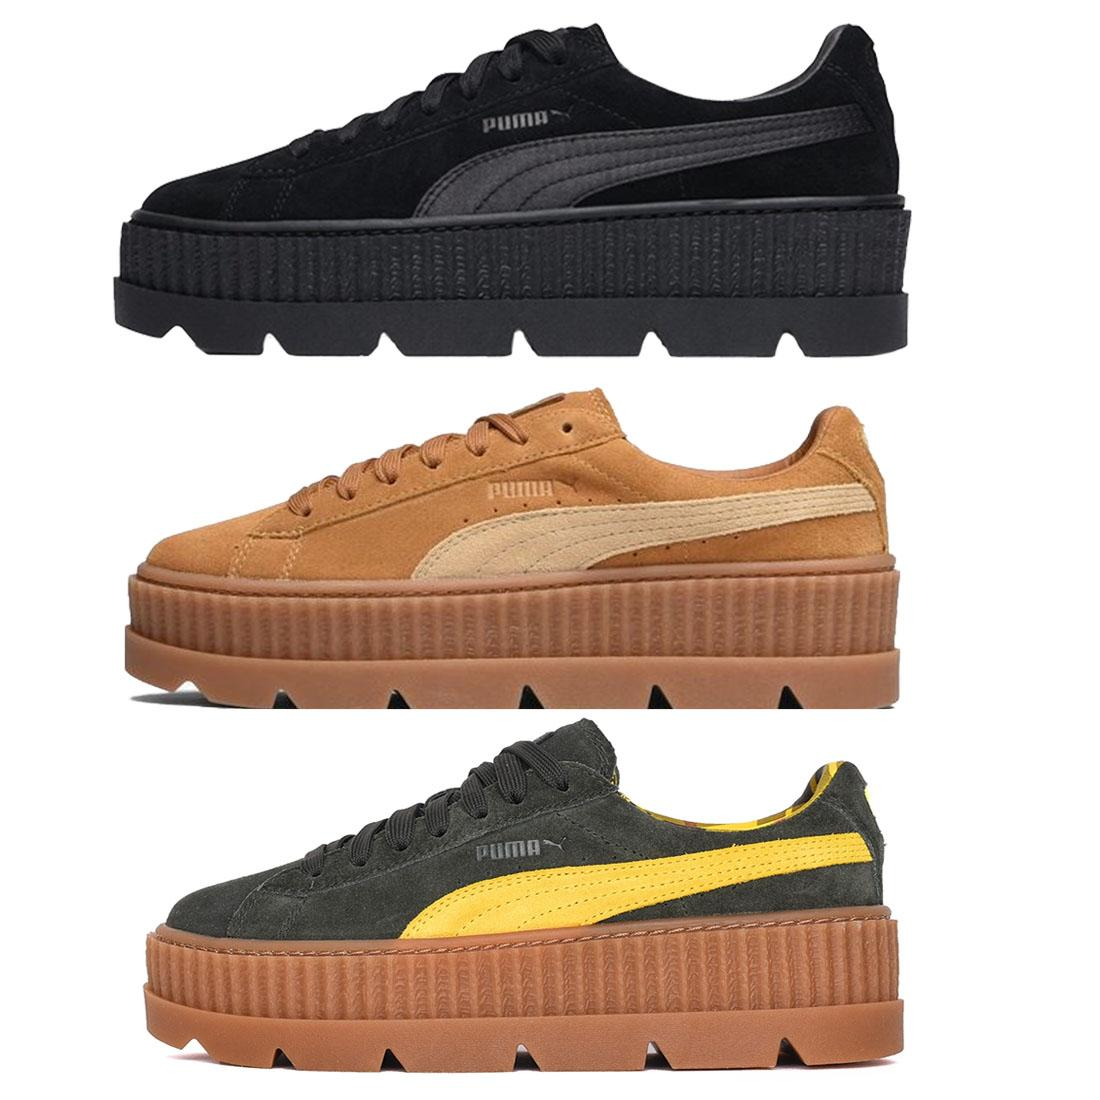 purchase cheap d14e7 6fb8f Details about PUMA Fenty X Rihanna Cleated Creeper Shoes Ladies Black Brown  Green Trainers